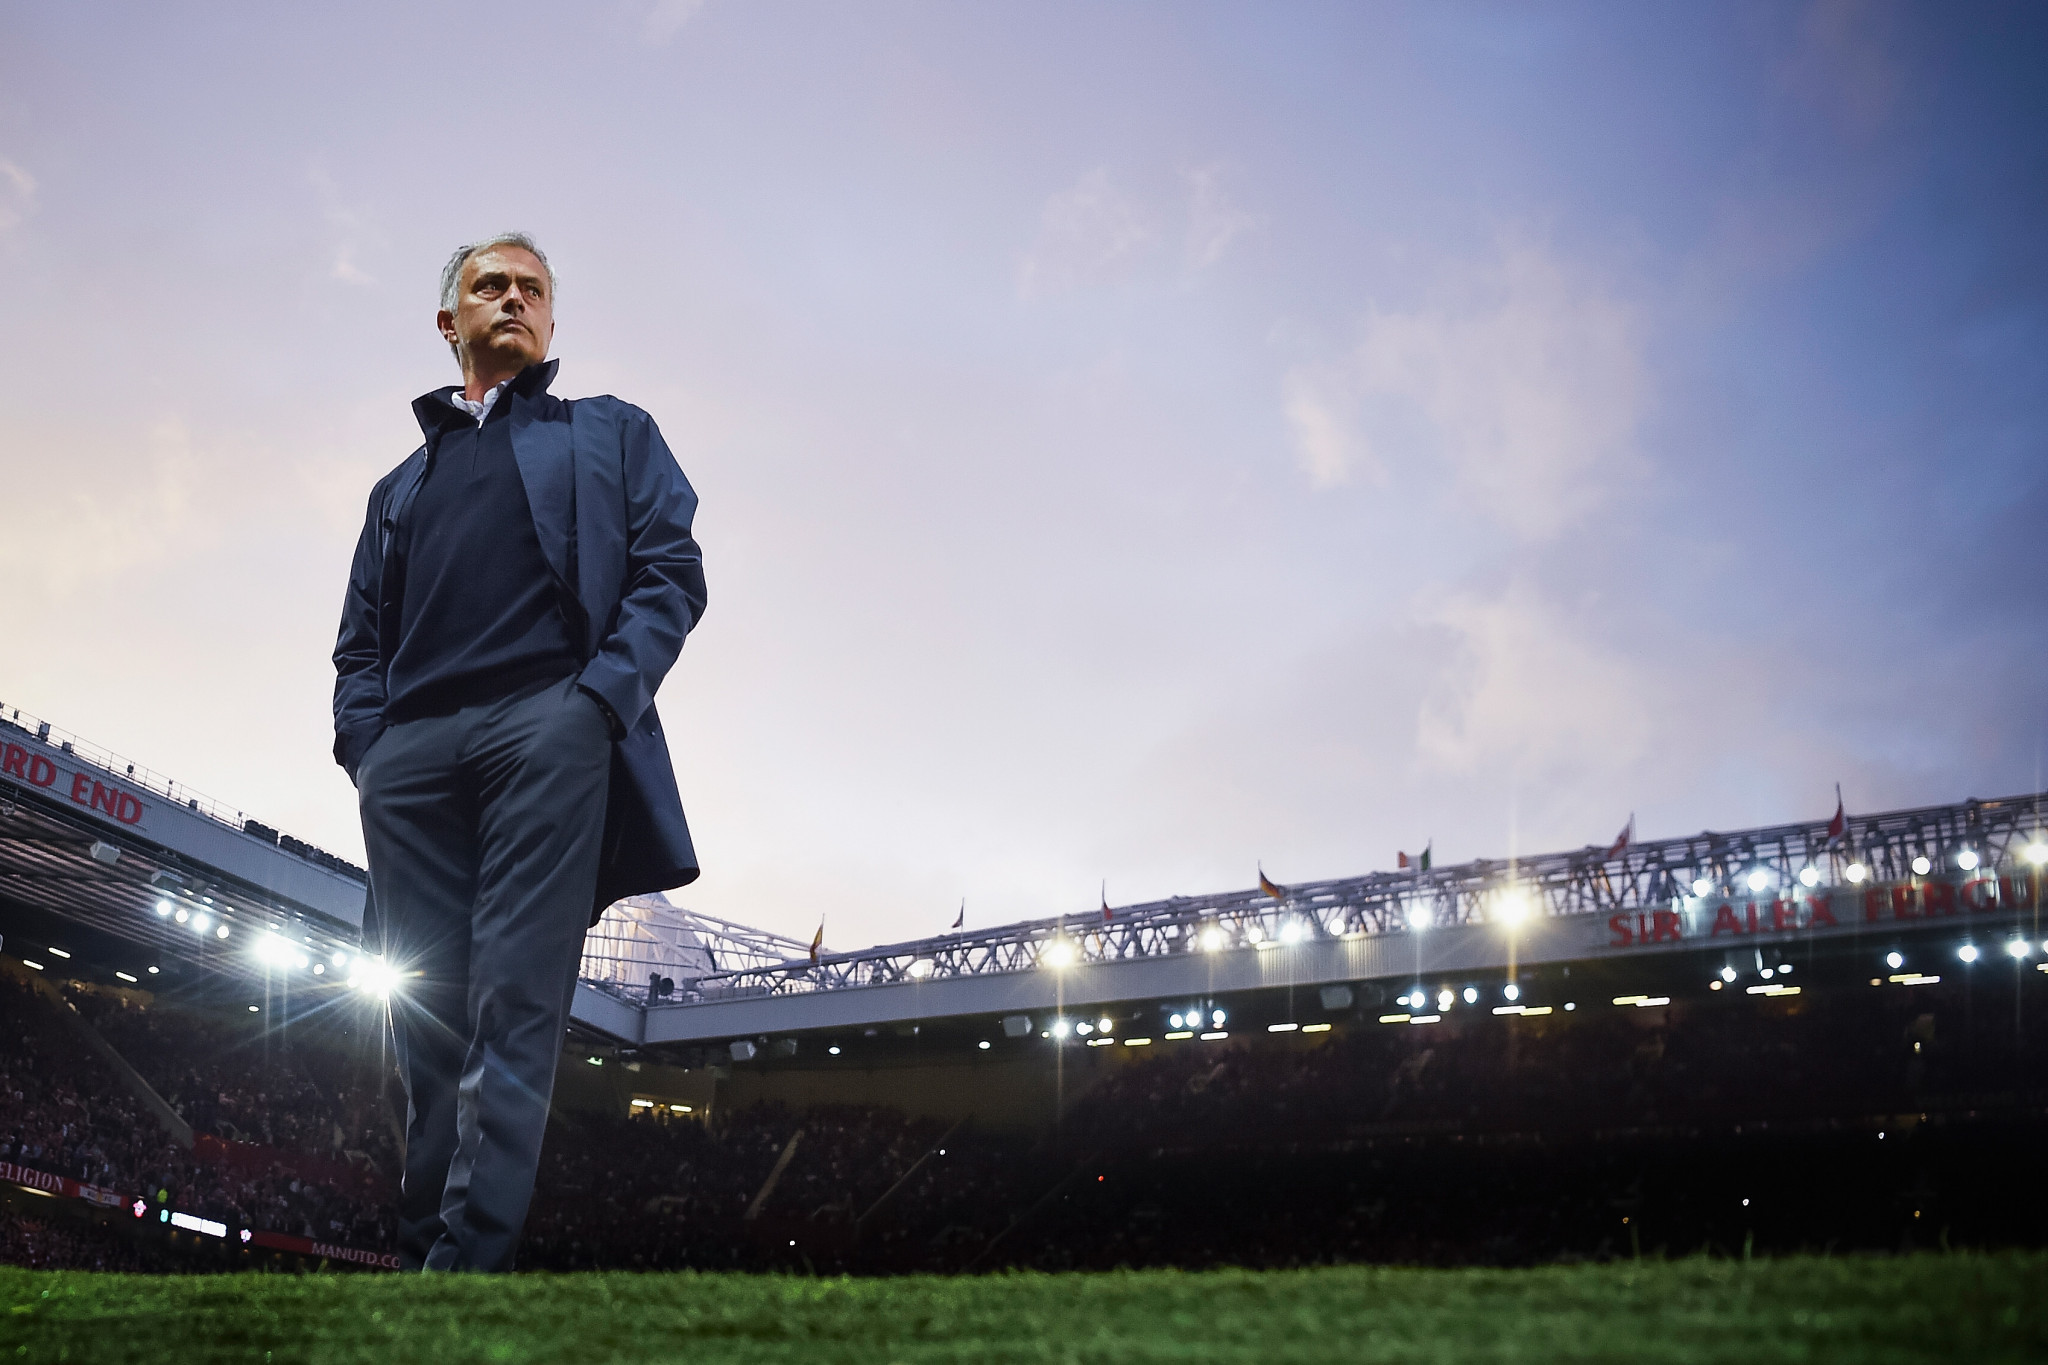 While success has disserted Jose Mourinho in recent seasons, drama has not ©Getty Images